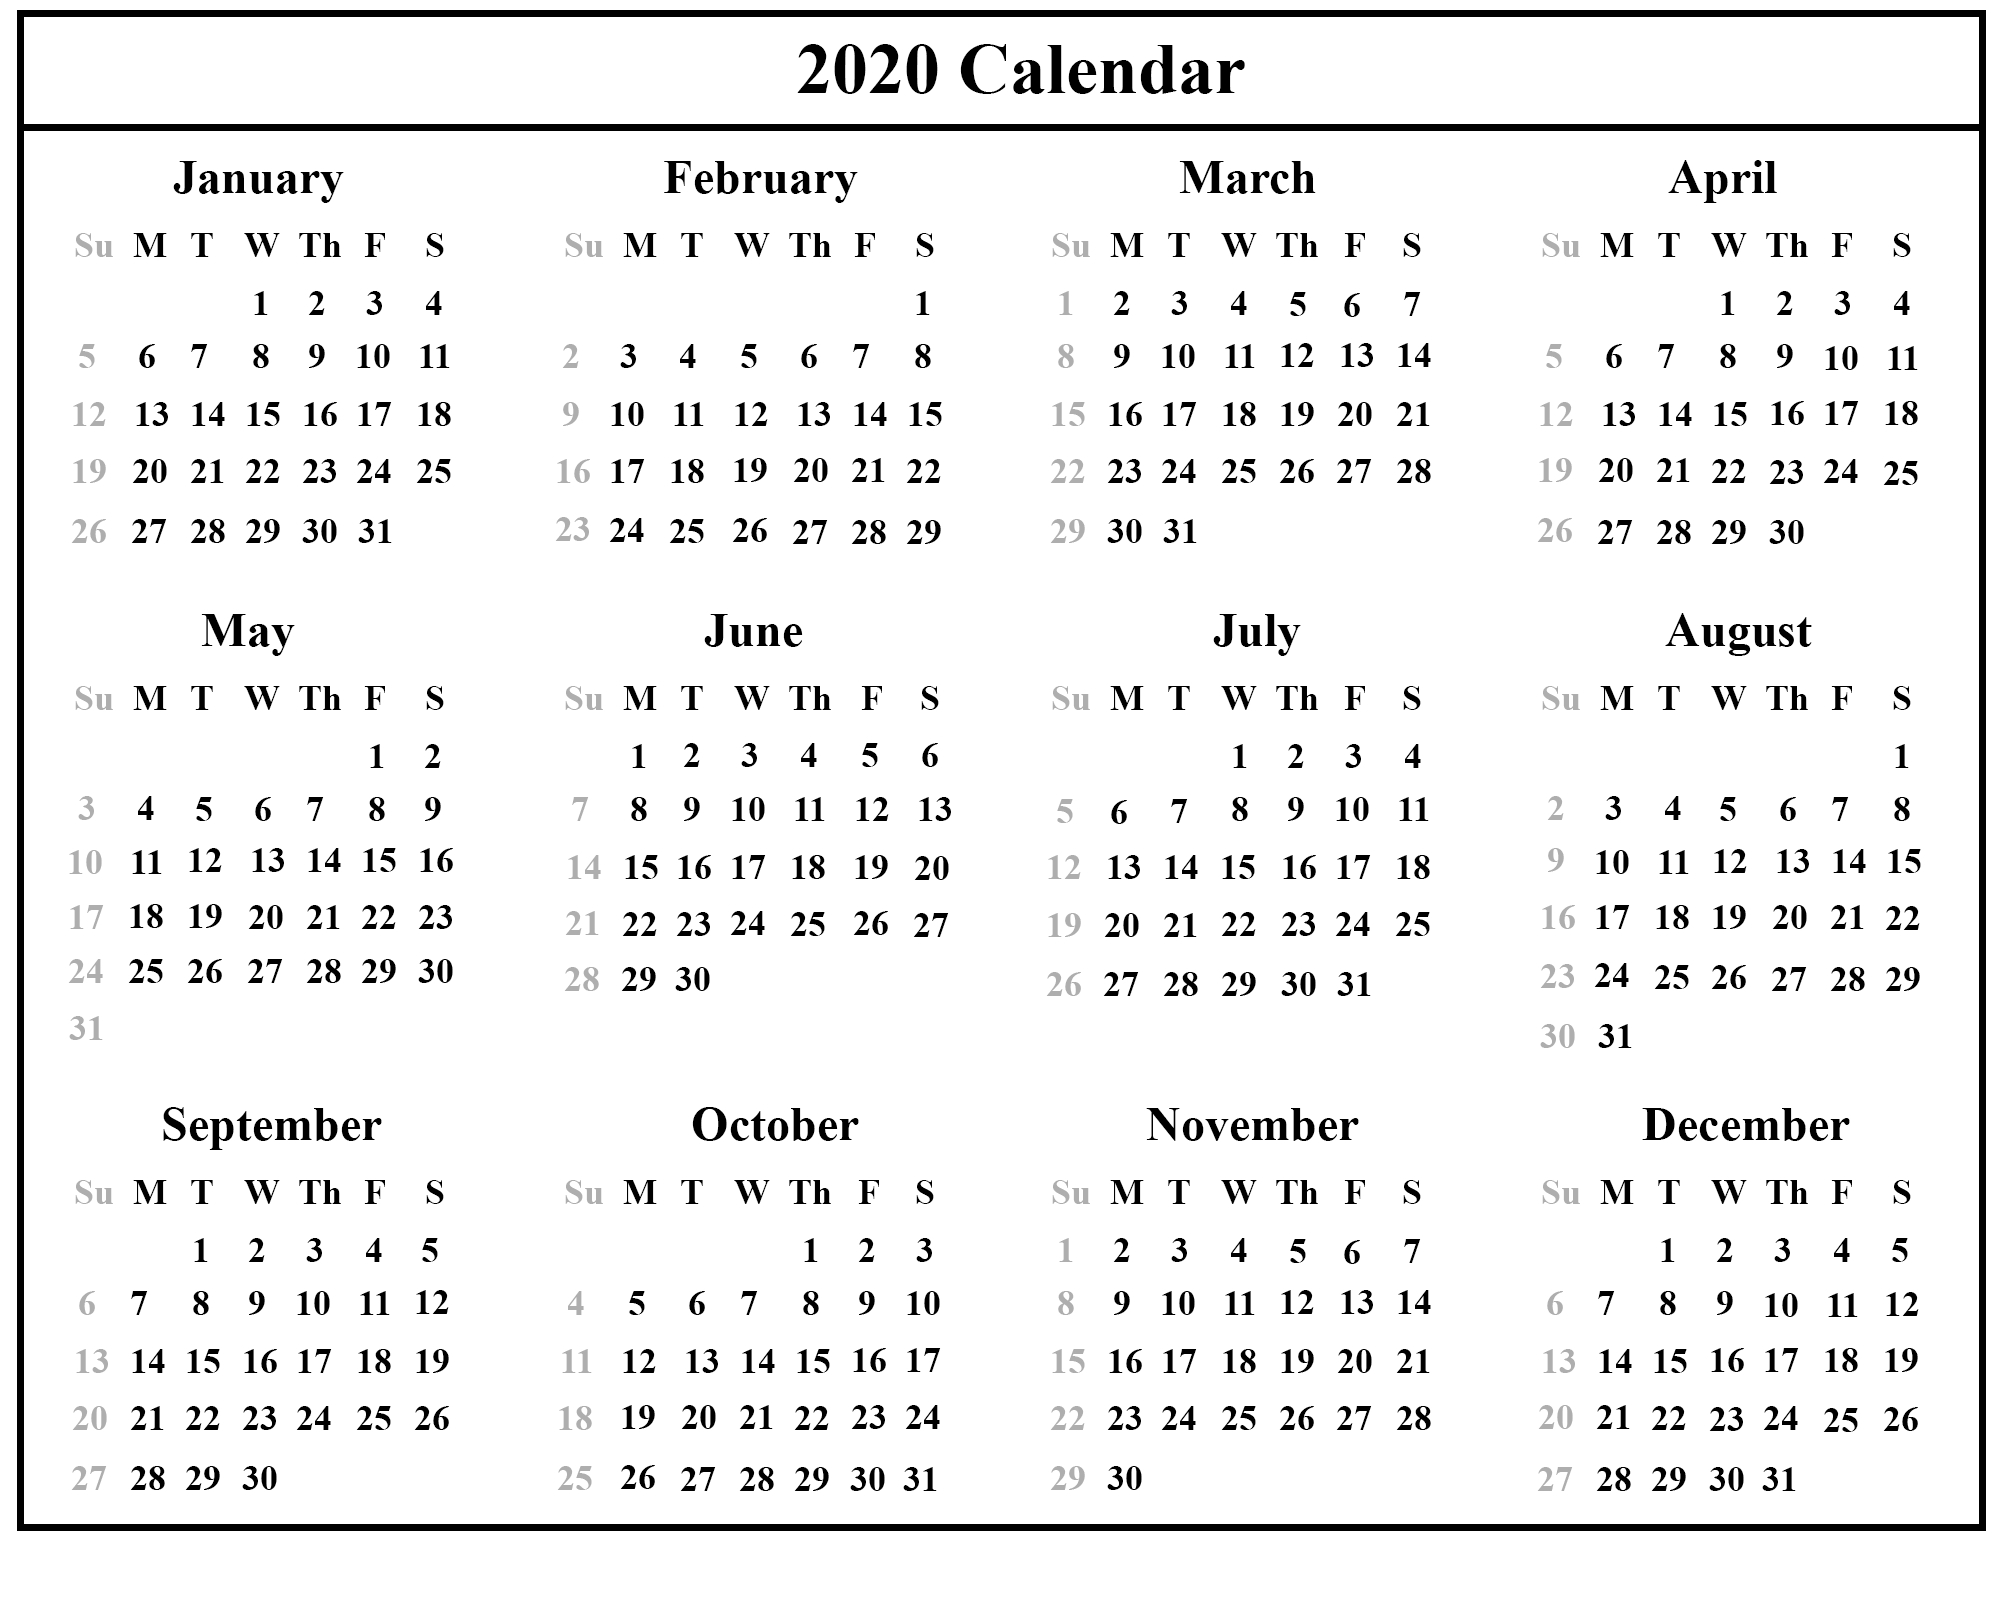 12 Month 2020 Printable Calendar Template With Holidays-Blank W 9 2020